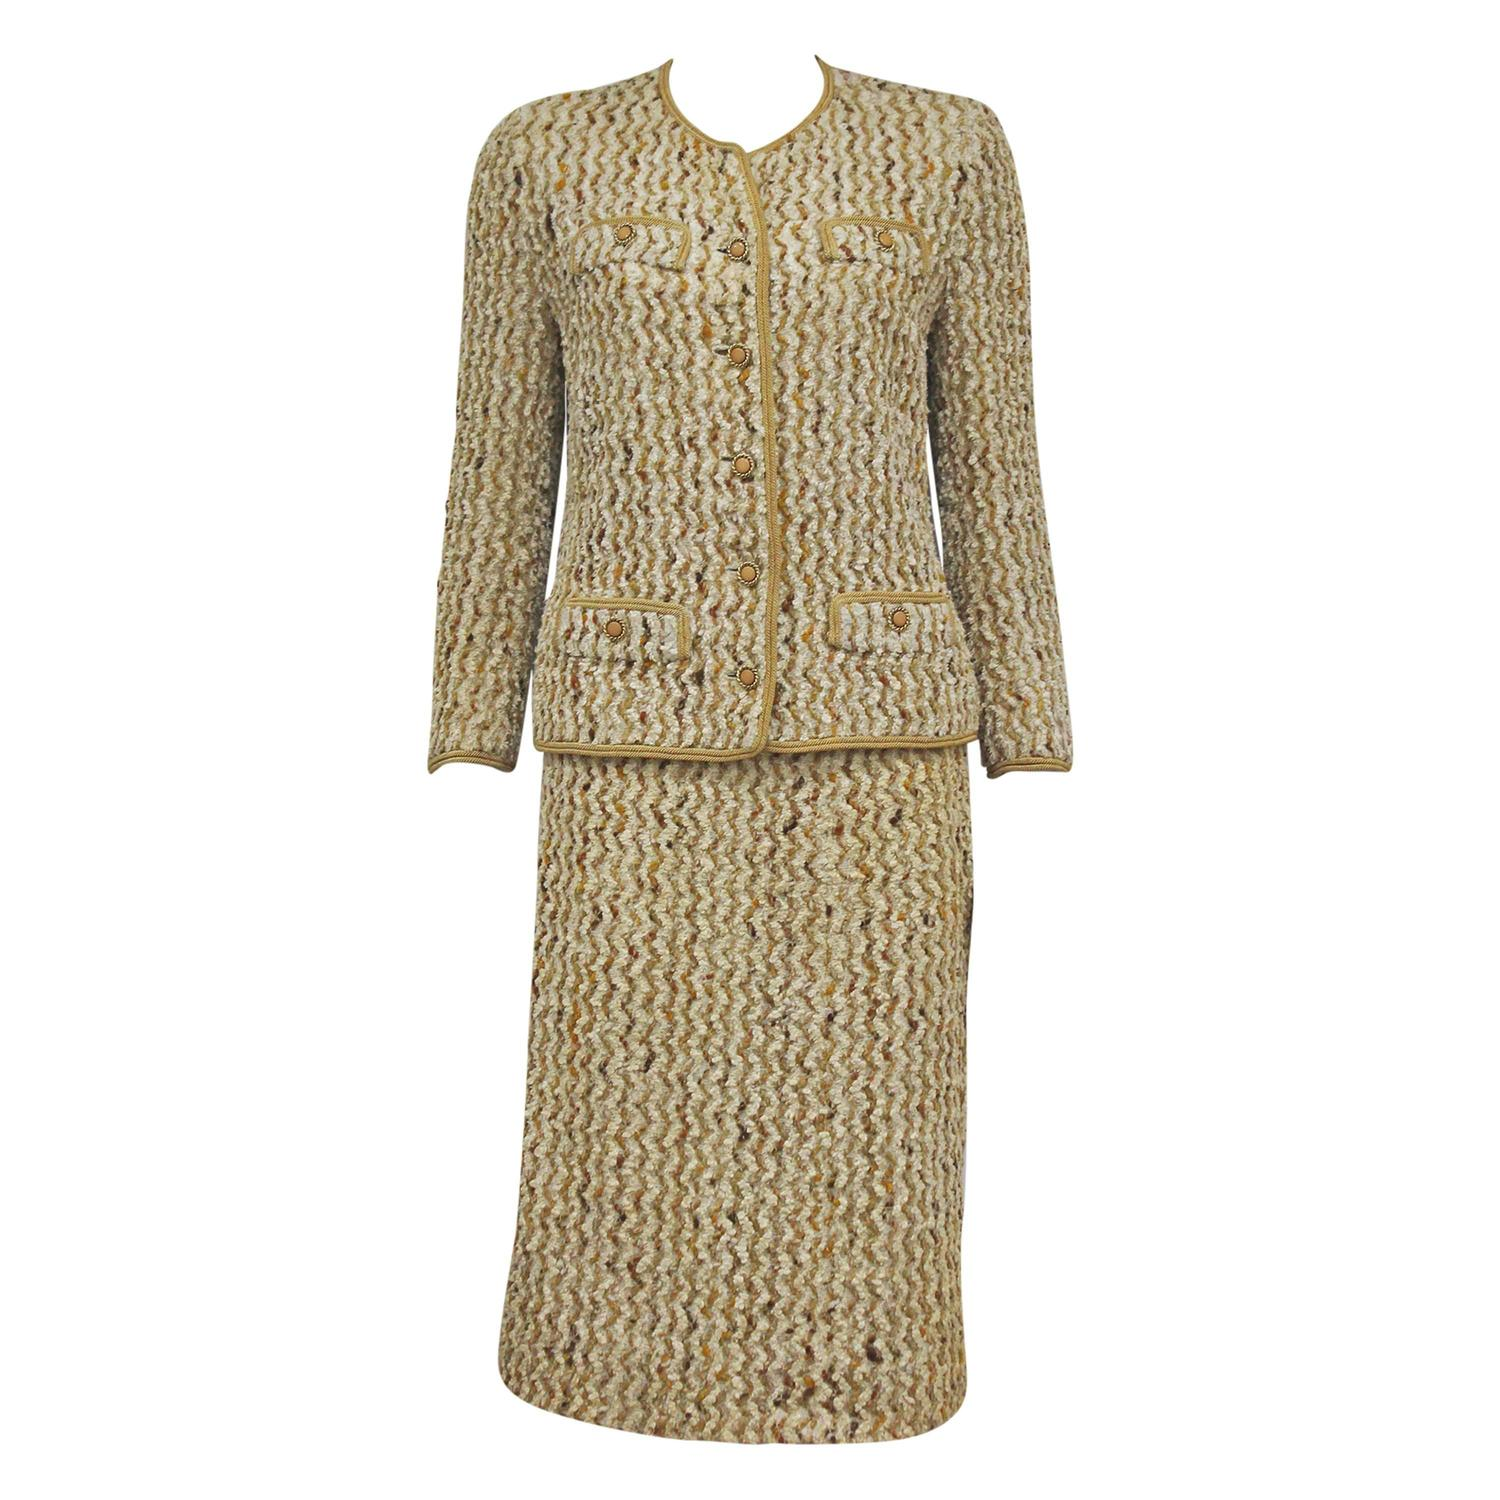 chanel haute couture boucl skirt suit for sale at